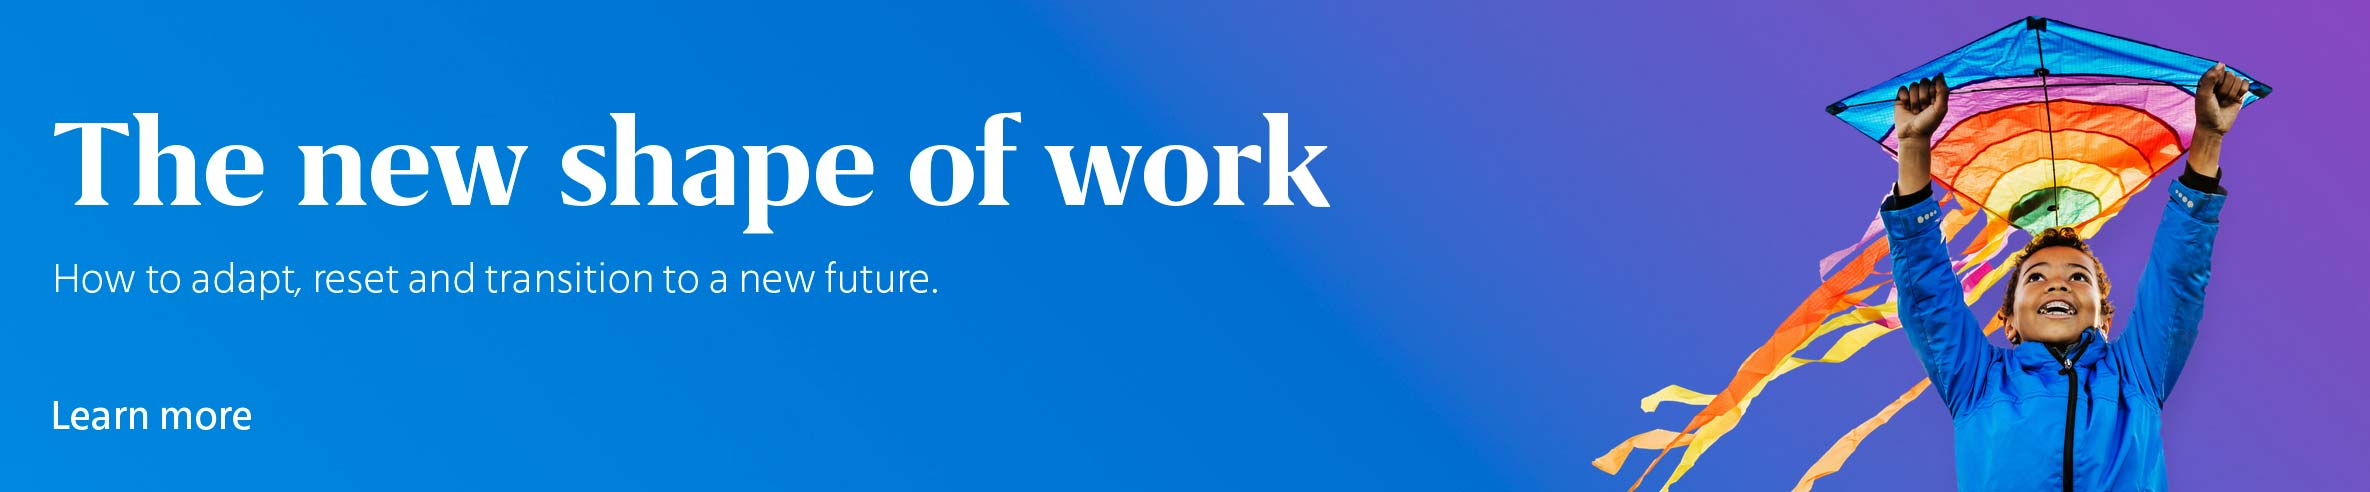 The new shape of work